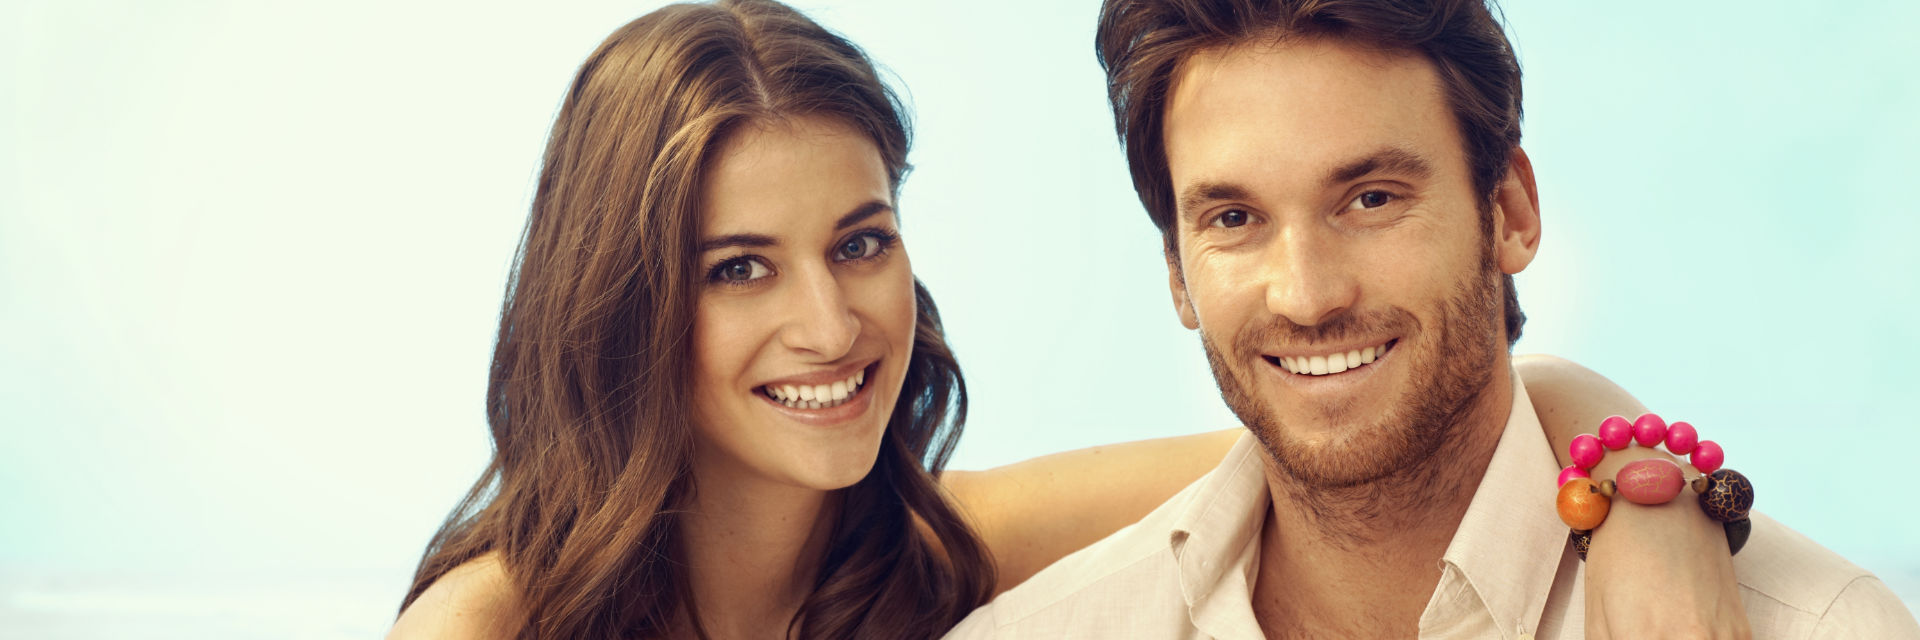 A cheerful young couple with perfect smiles.